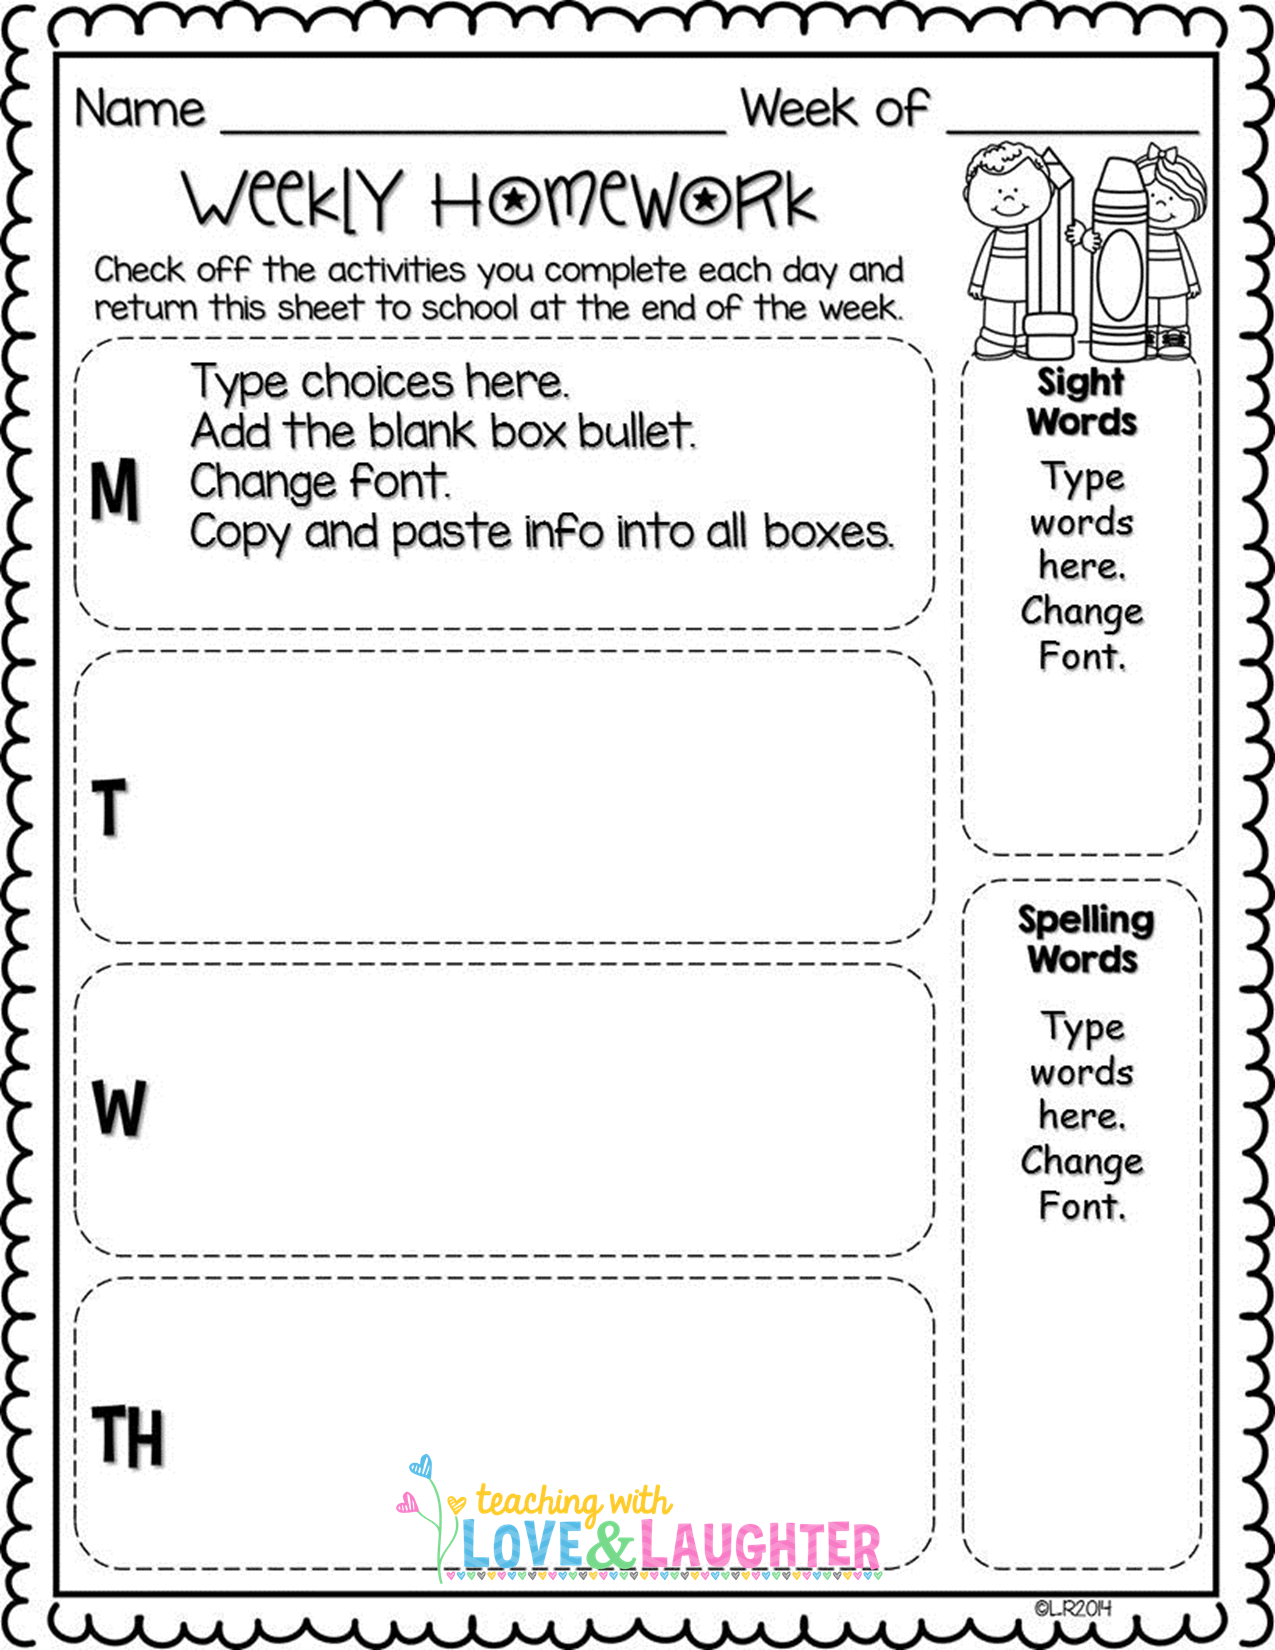 Homework Check List Homework Checklist For 4 Kids 02 02